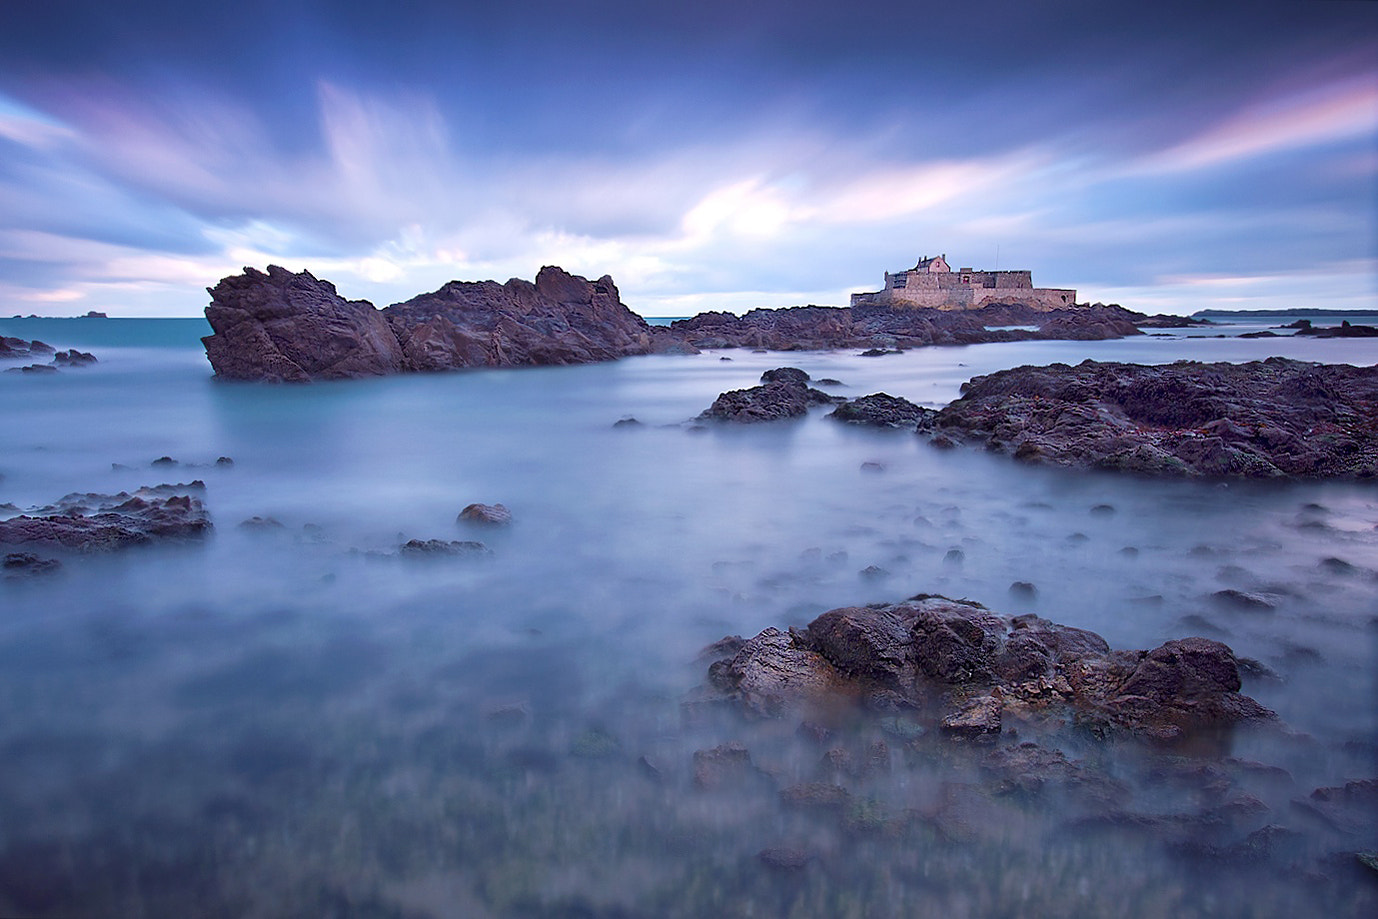 Photograph Saint Malo in Blue Light by Lubomir Letko on 500px